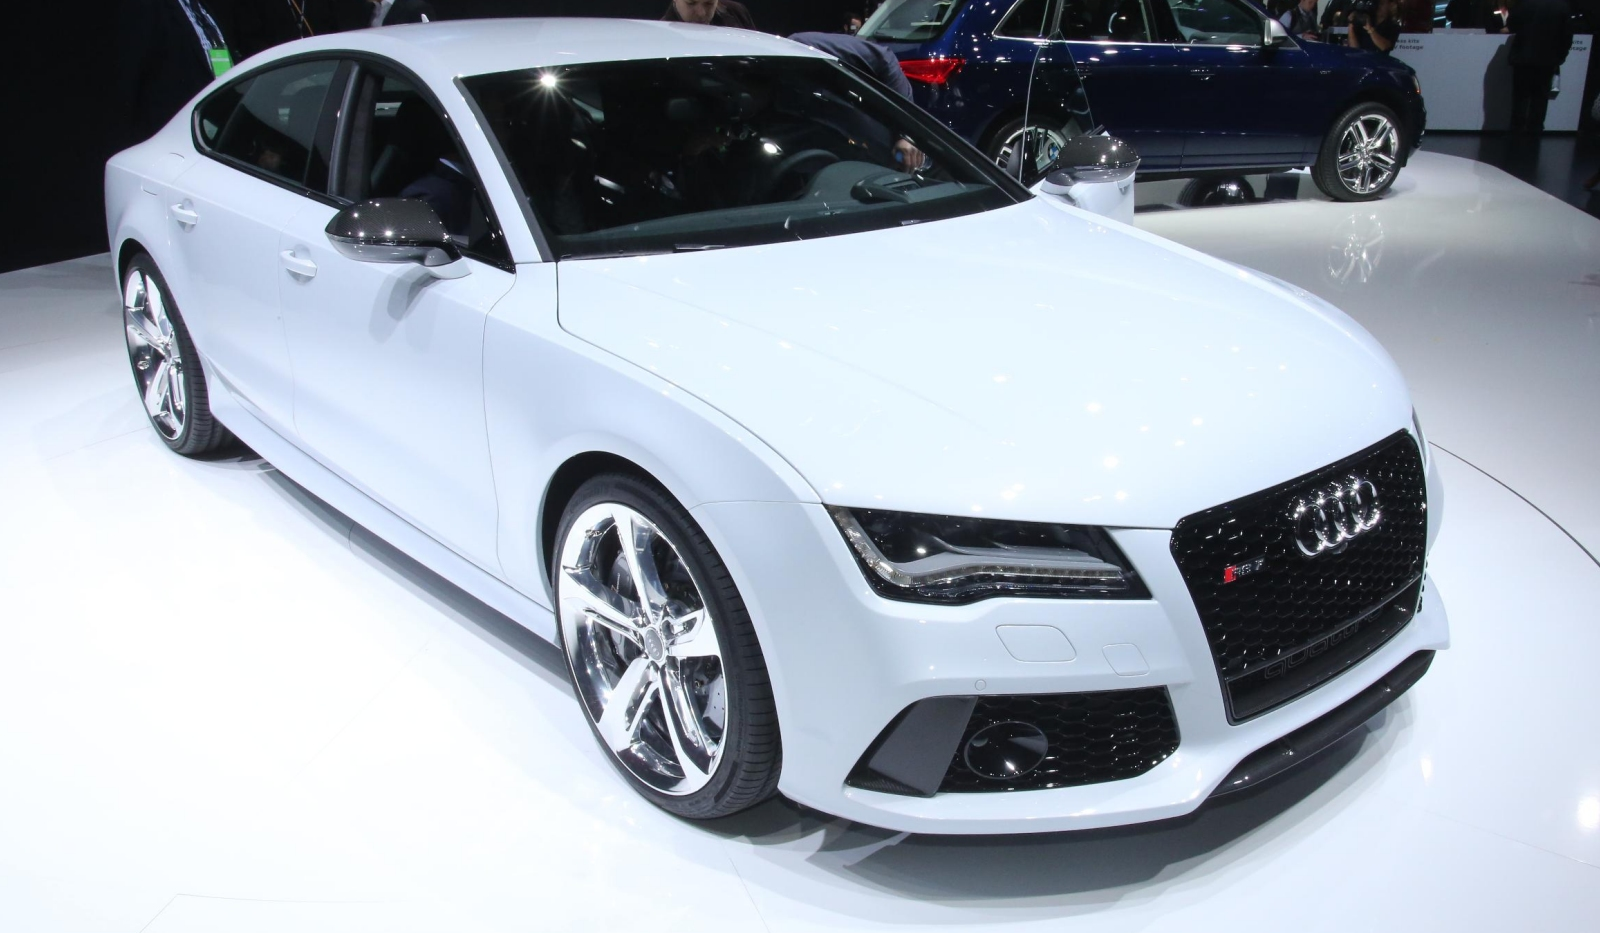 detroit 2013 audi rs7 sportback gtspirit. Black Bedroom Furniture Sets. Home Design Ideas